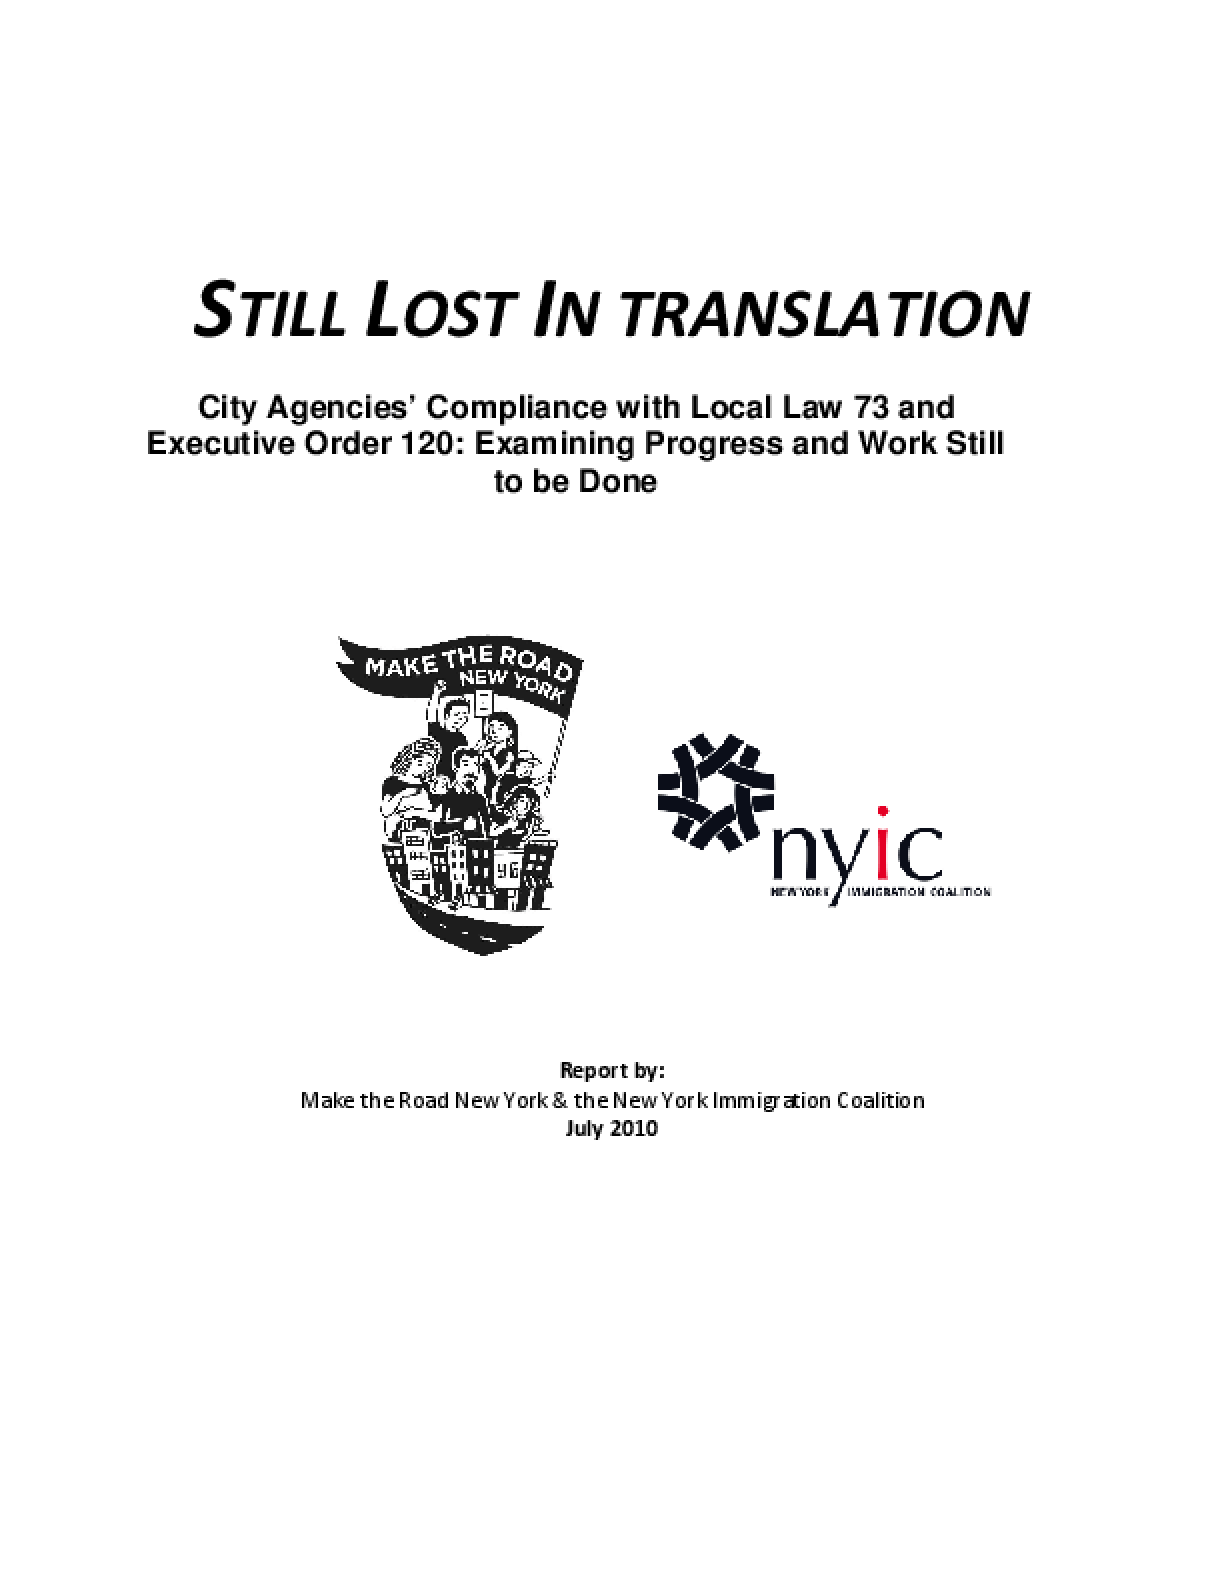 Still Lost in Translation: City Agencies' Compliance with Local Law 73 and Executive Order 120: Examining Progress and Work Still to Be Done